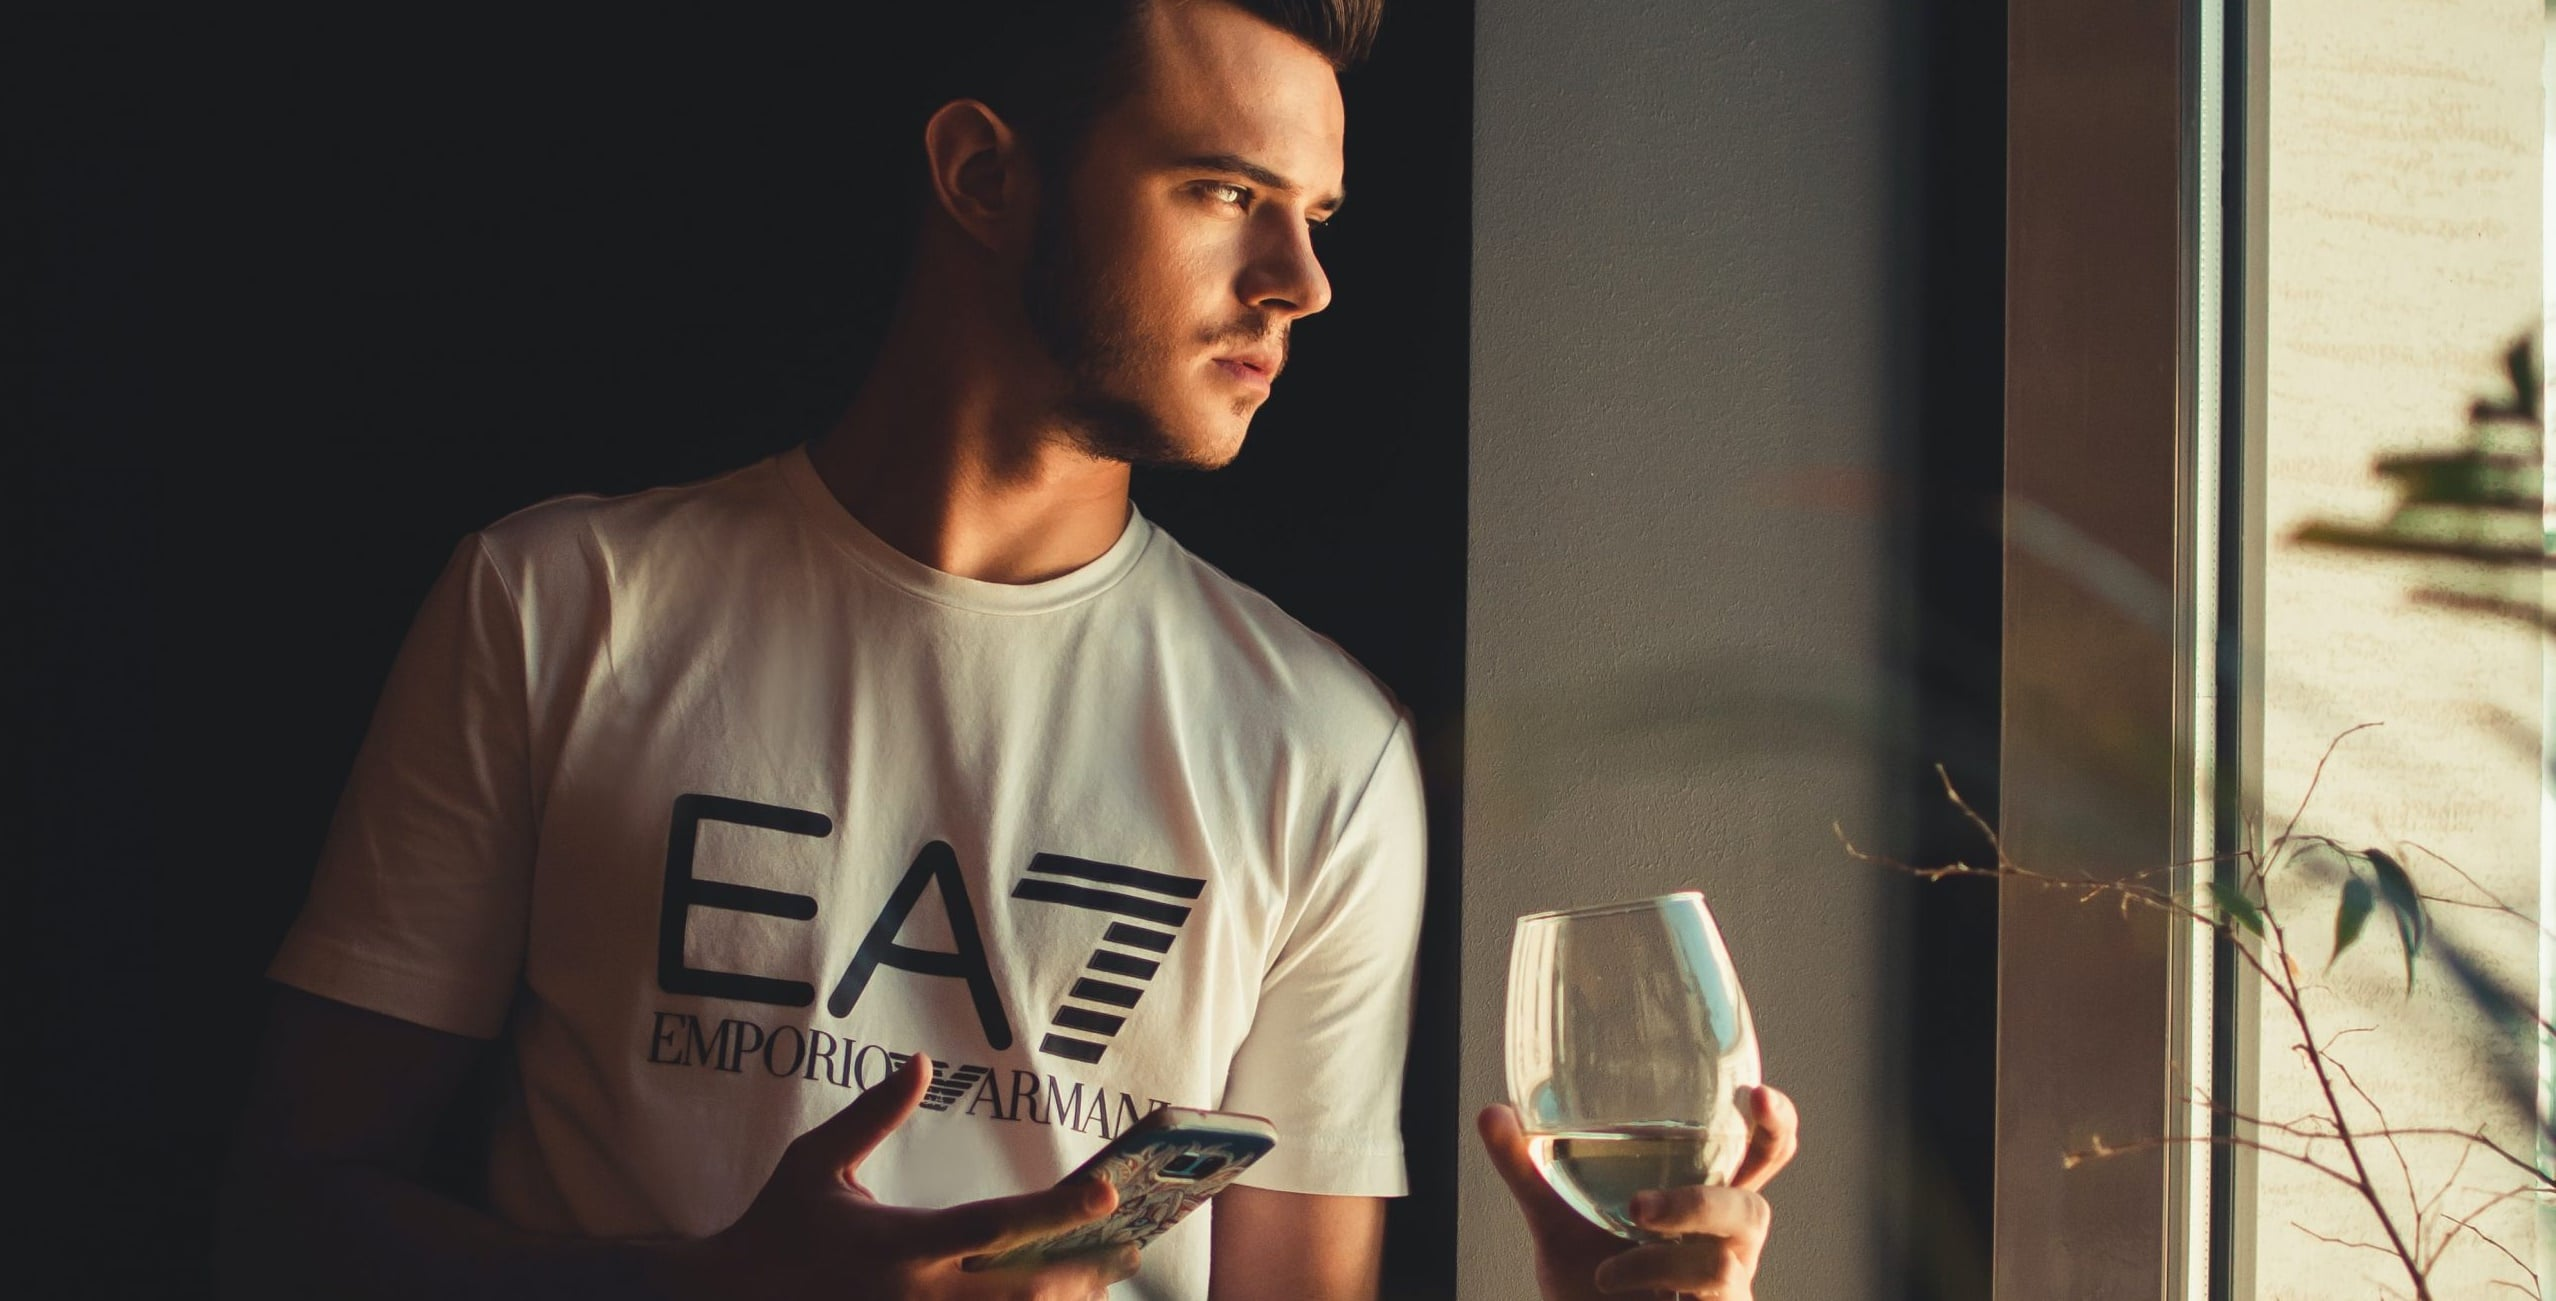 Man Drinking In Isolation with phone